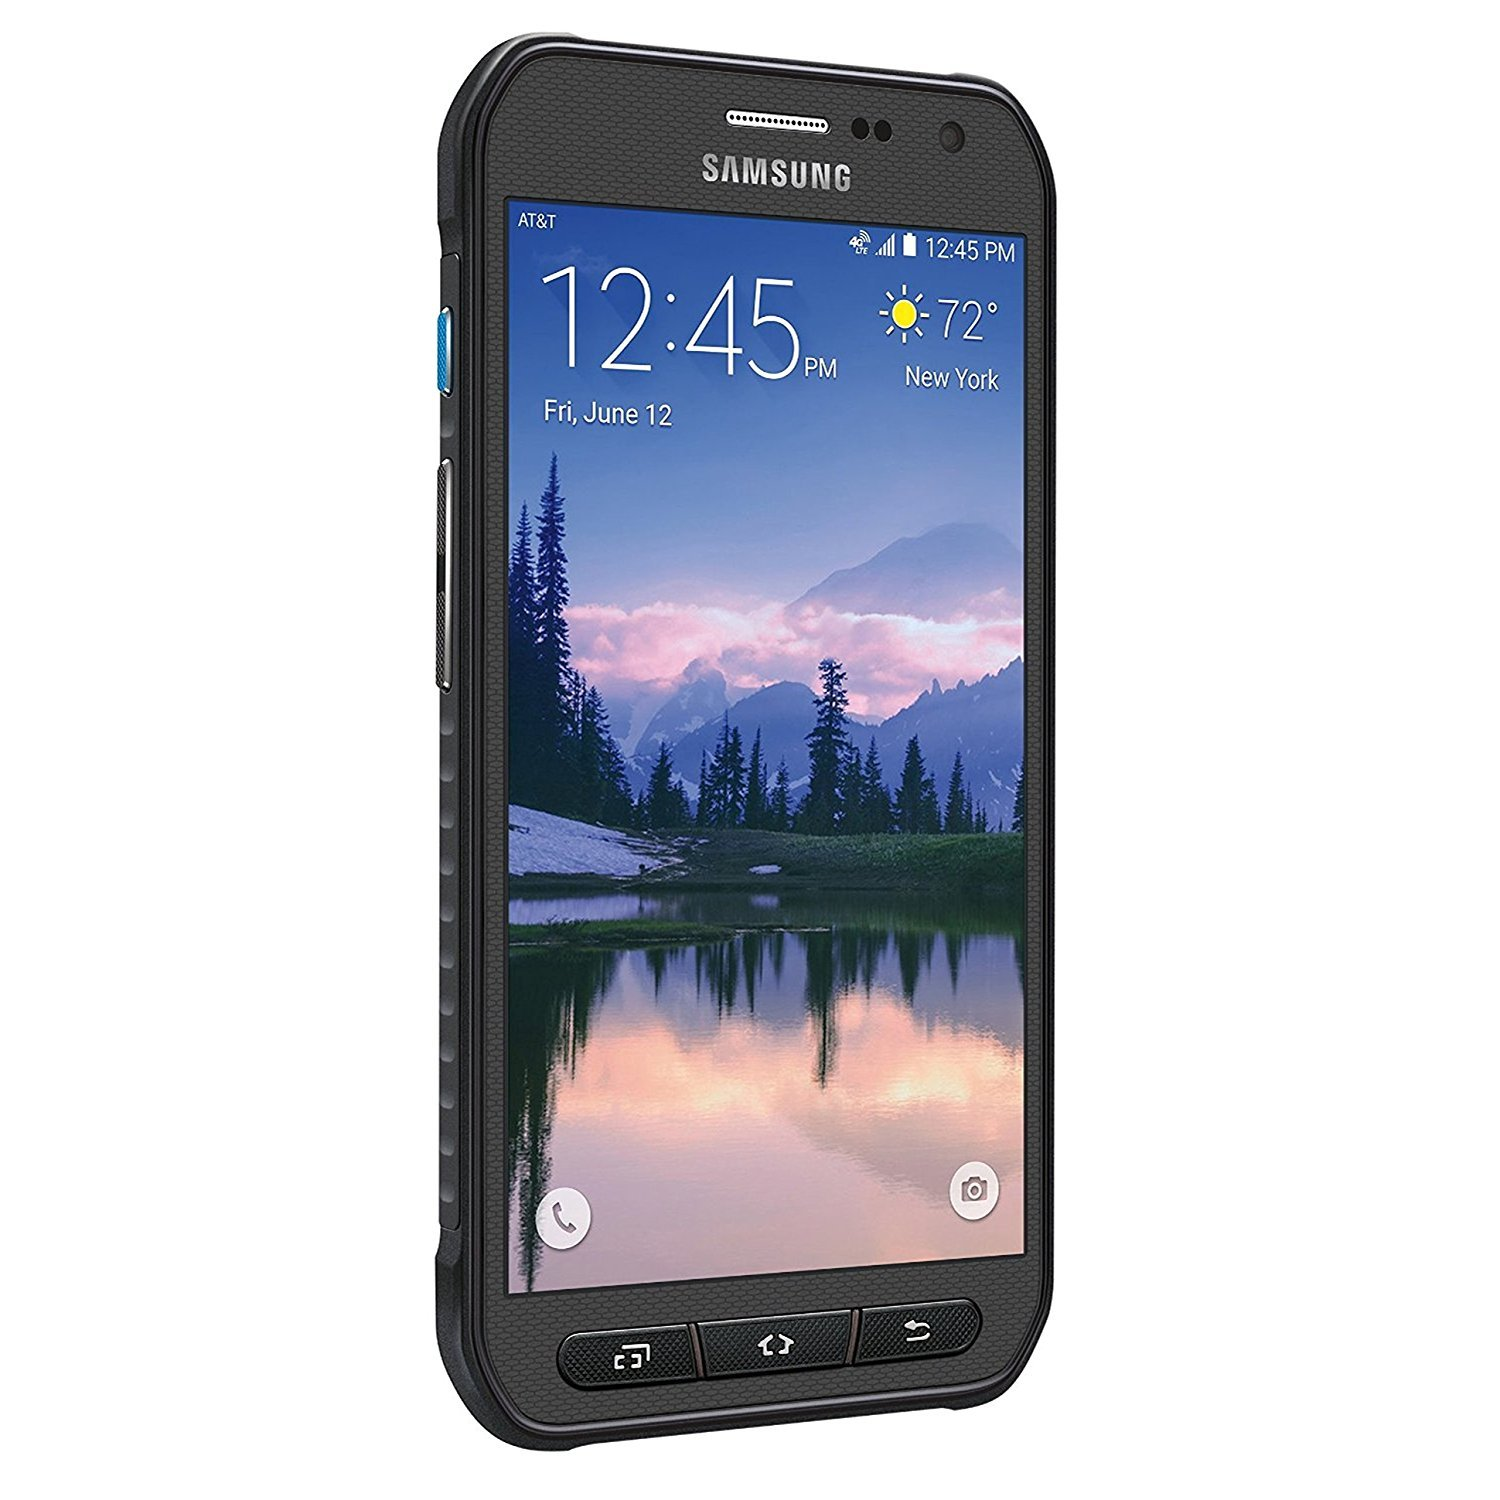 Samsung Galaxy S6 Active G890A 32GB Unlocked GSM 4G LTE Octa-Core Smartphone w/ 16MP Camera - Gray (Renewed)